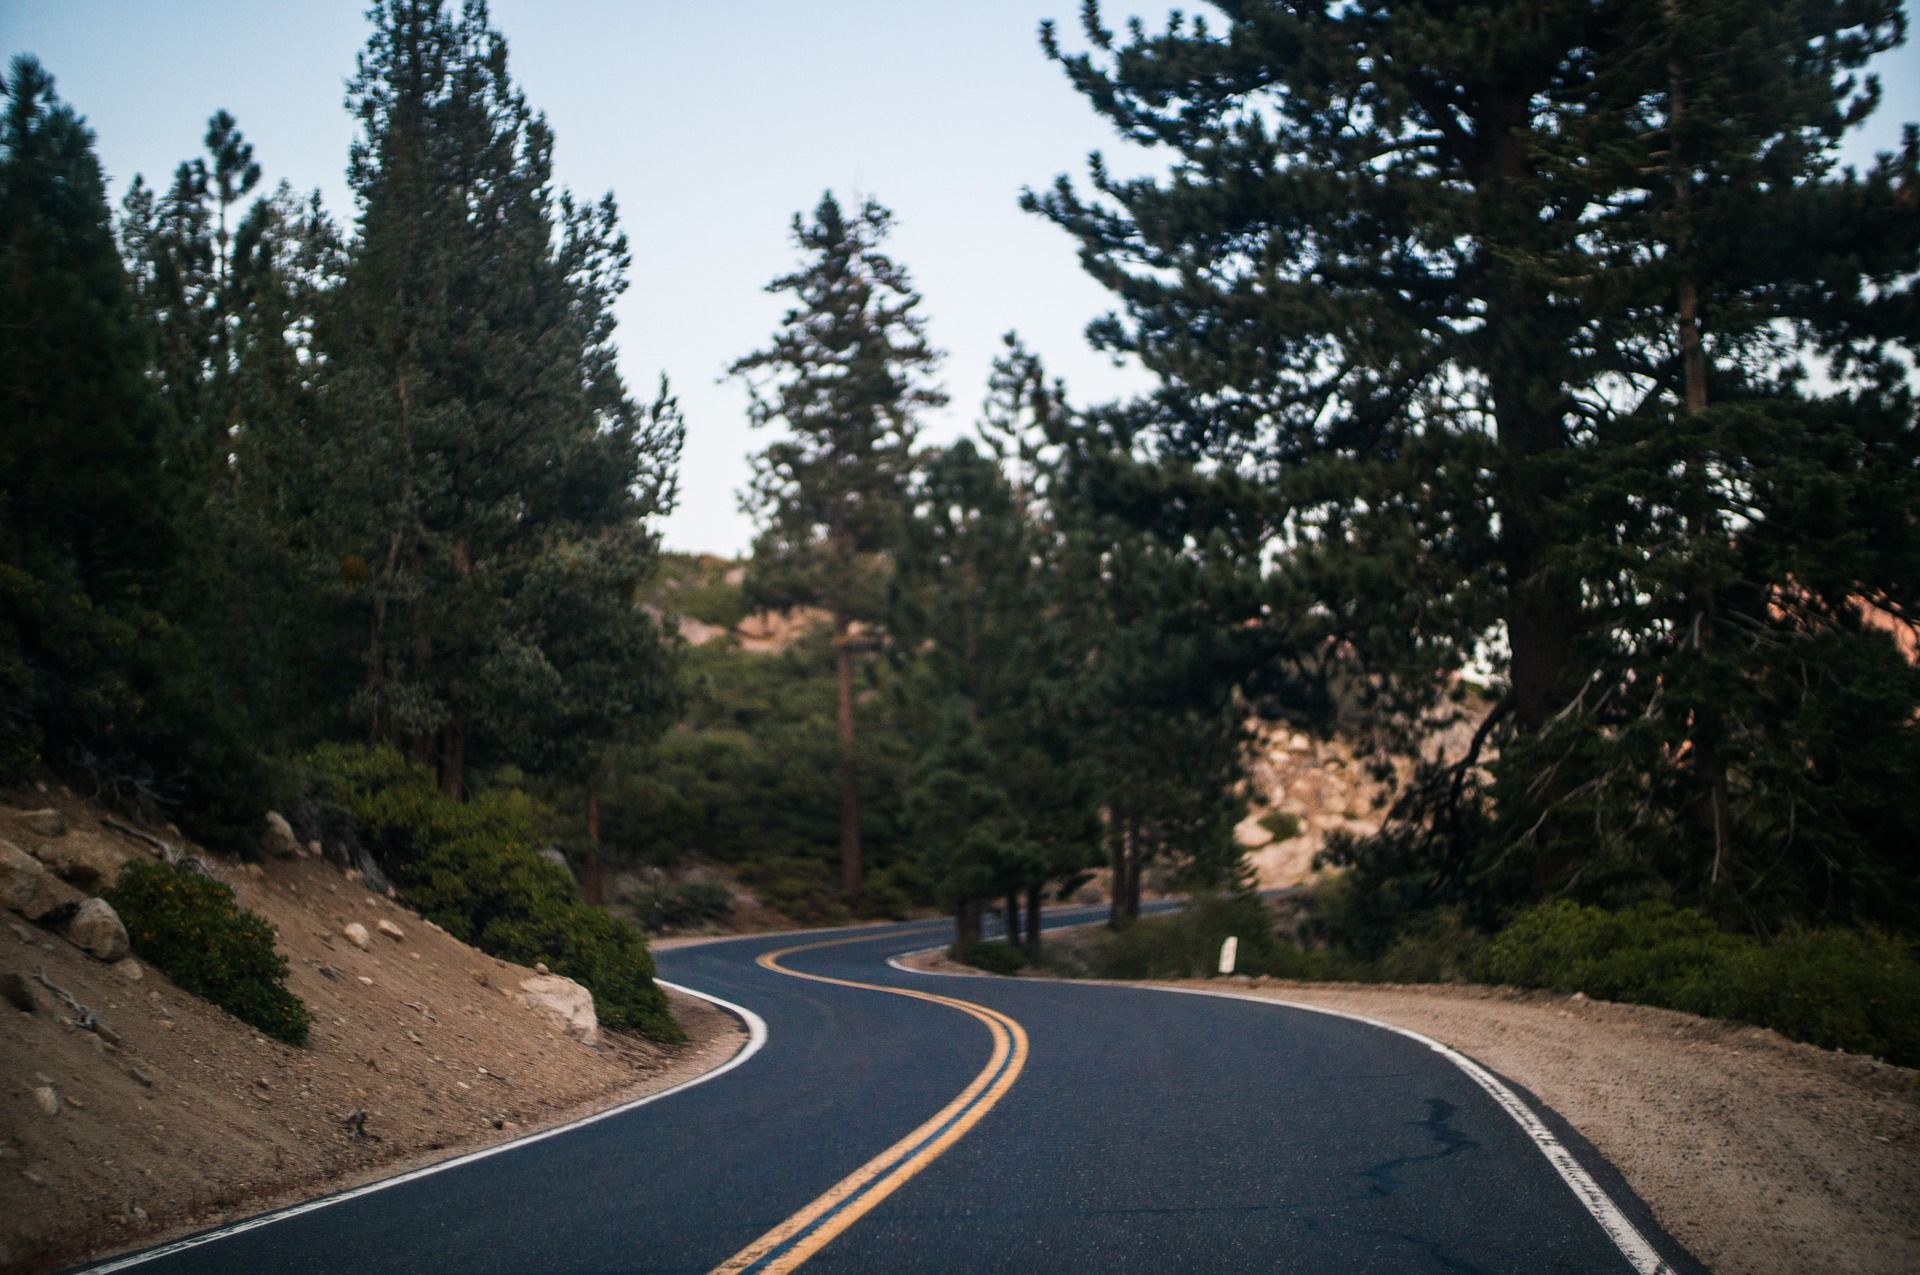 19 Free Biking and Driving Ways to Enjoy the Summer